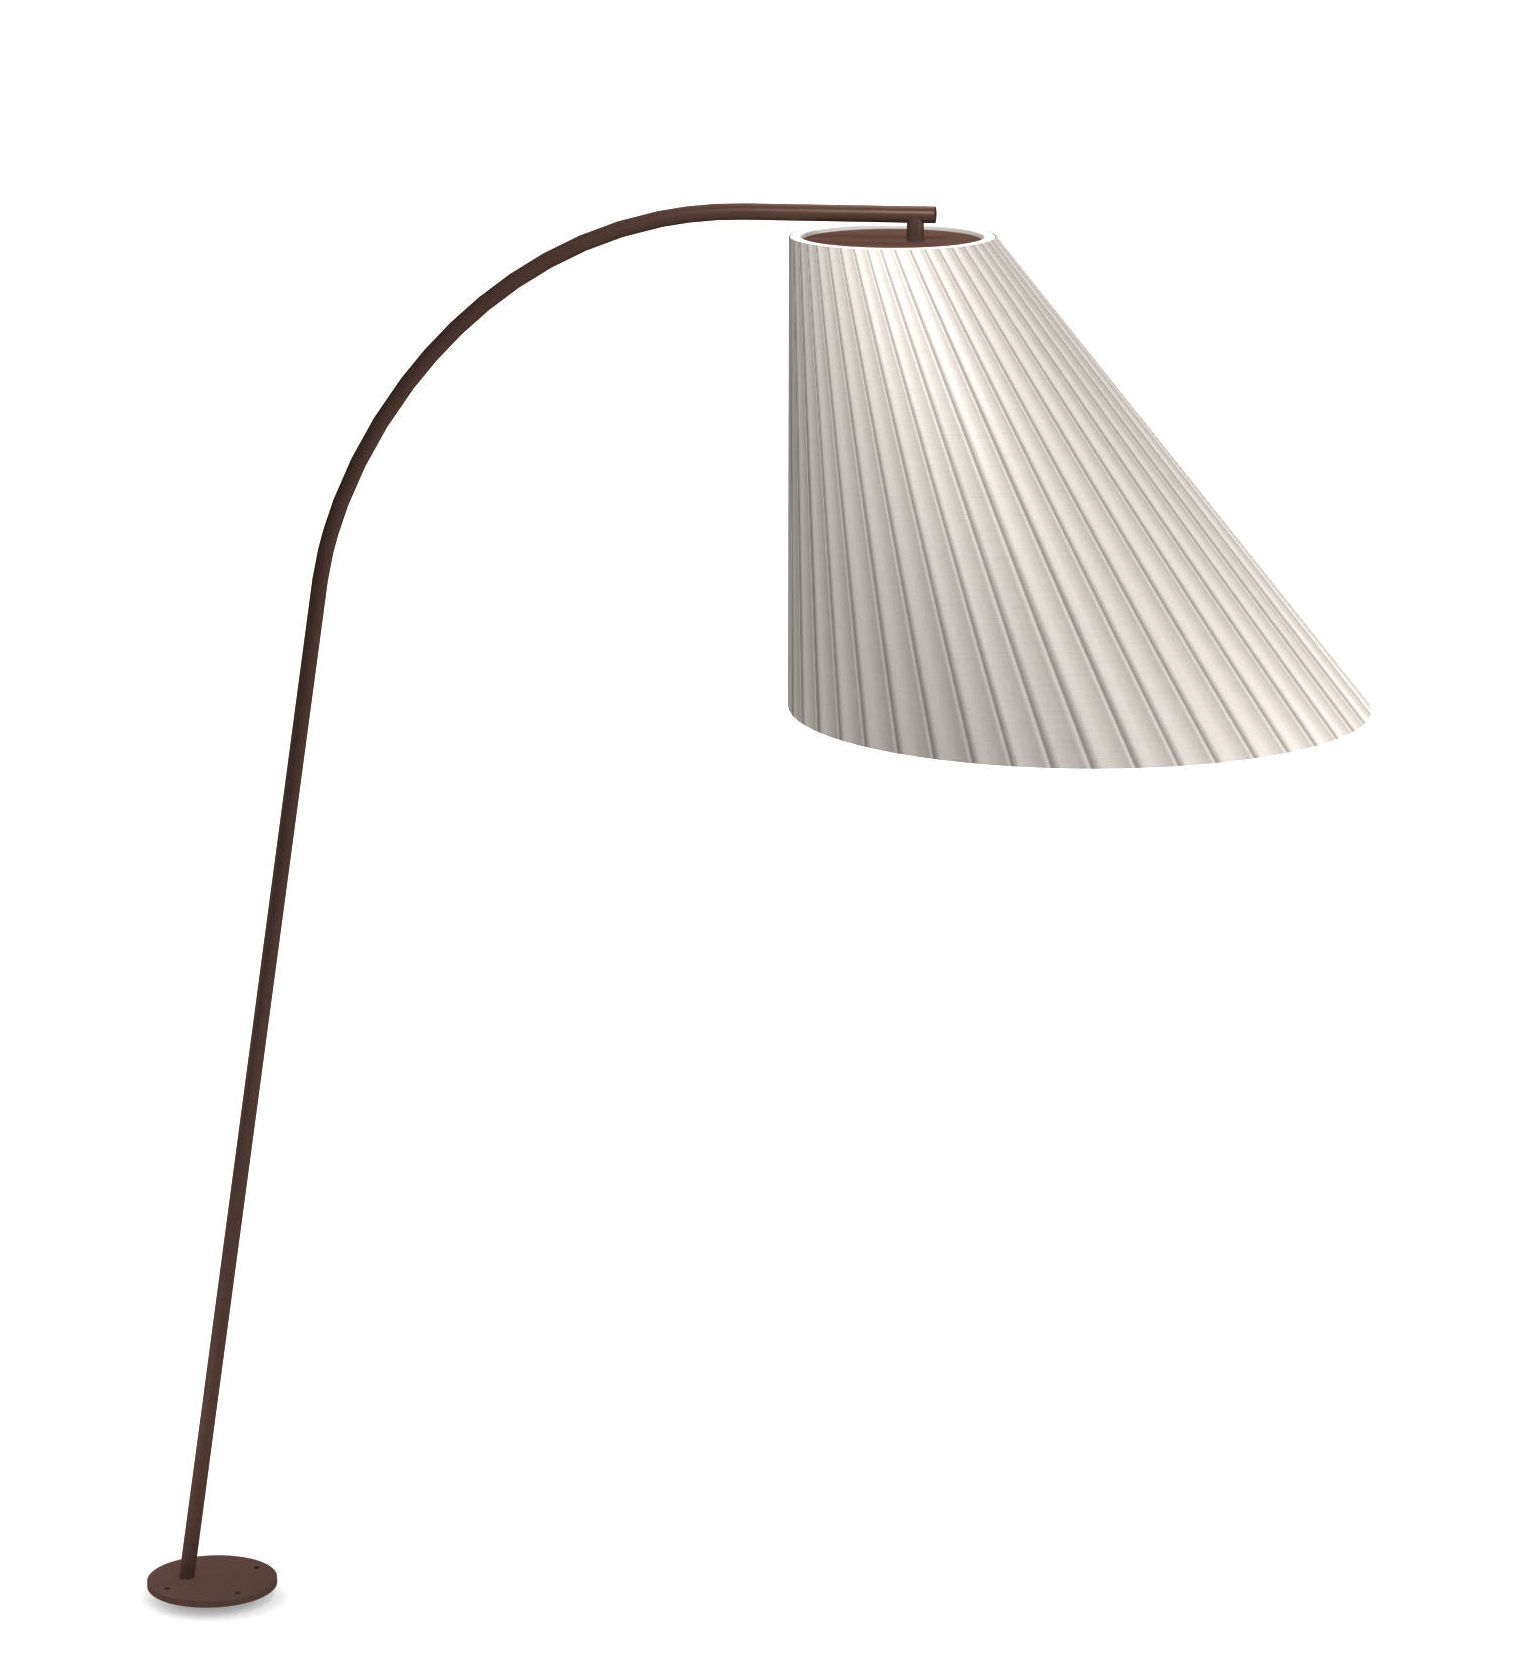 Lighting - Floor lamps - Cone LED Floor lamp - / H 271 cm by Emu - Brown / White diffuser - Corten steel, Polycarbonate, Synthetic fabric